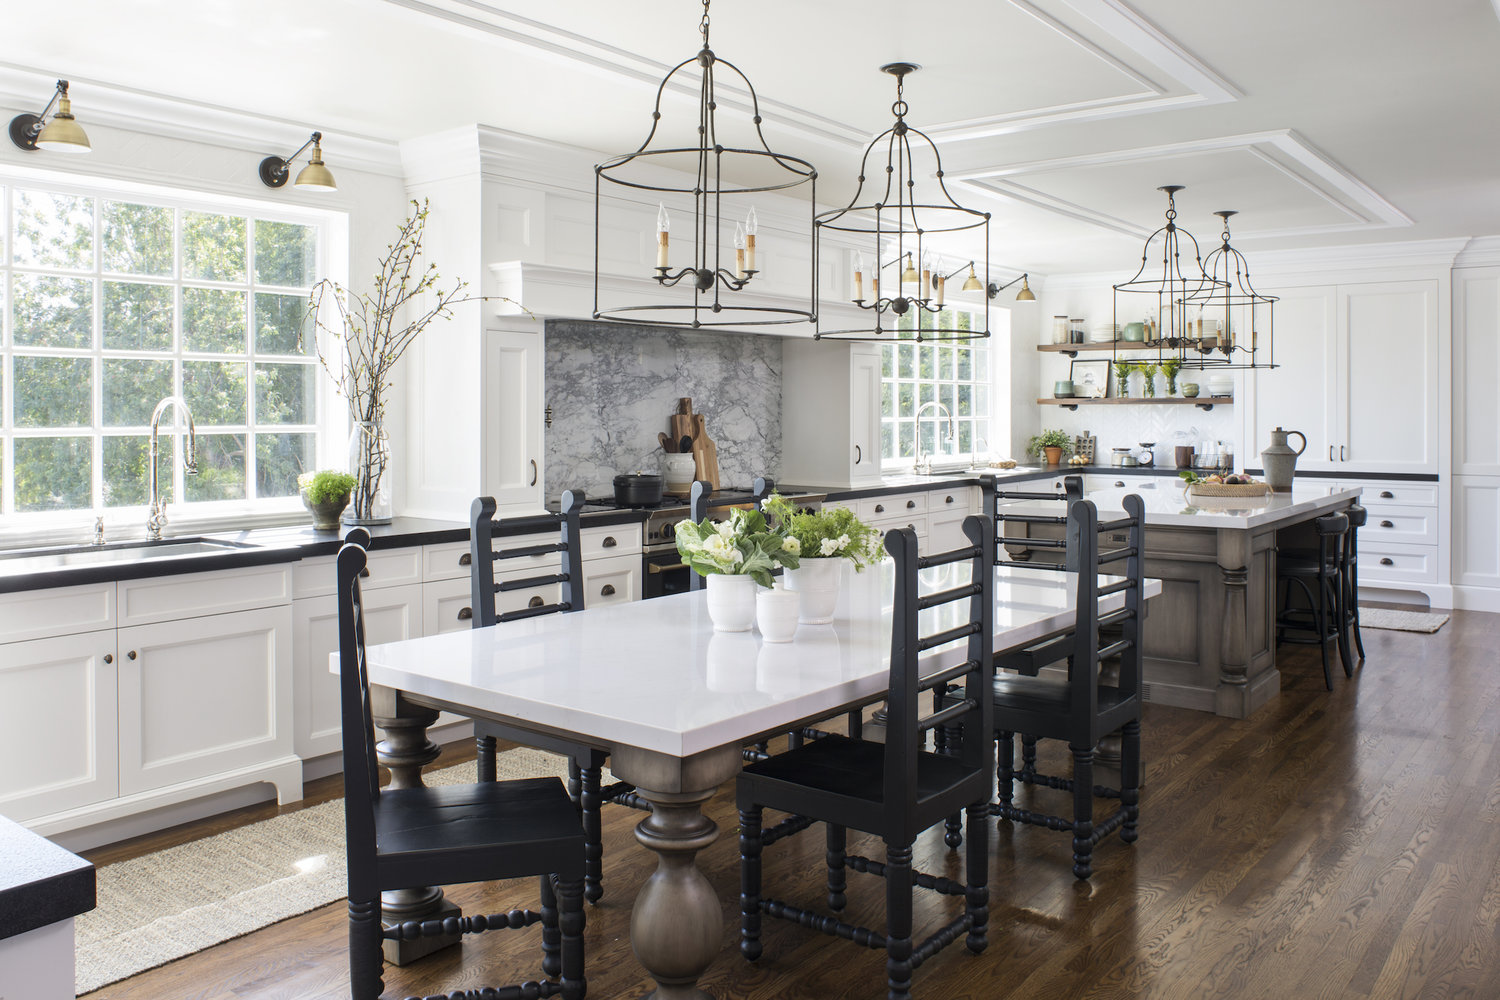 large coastal kitchen design with white cabinets and black countertops. a large center island and dining table with white marble top occupy the center of the kitchen. black pendant lights hang above surrounded by crown molding on the ceiling